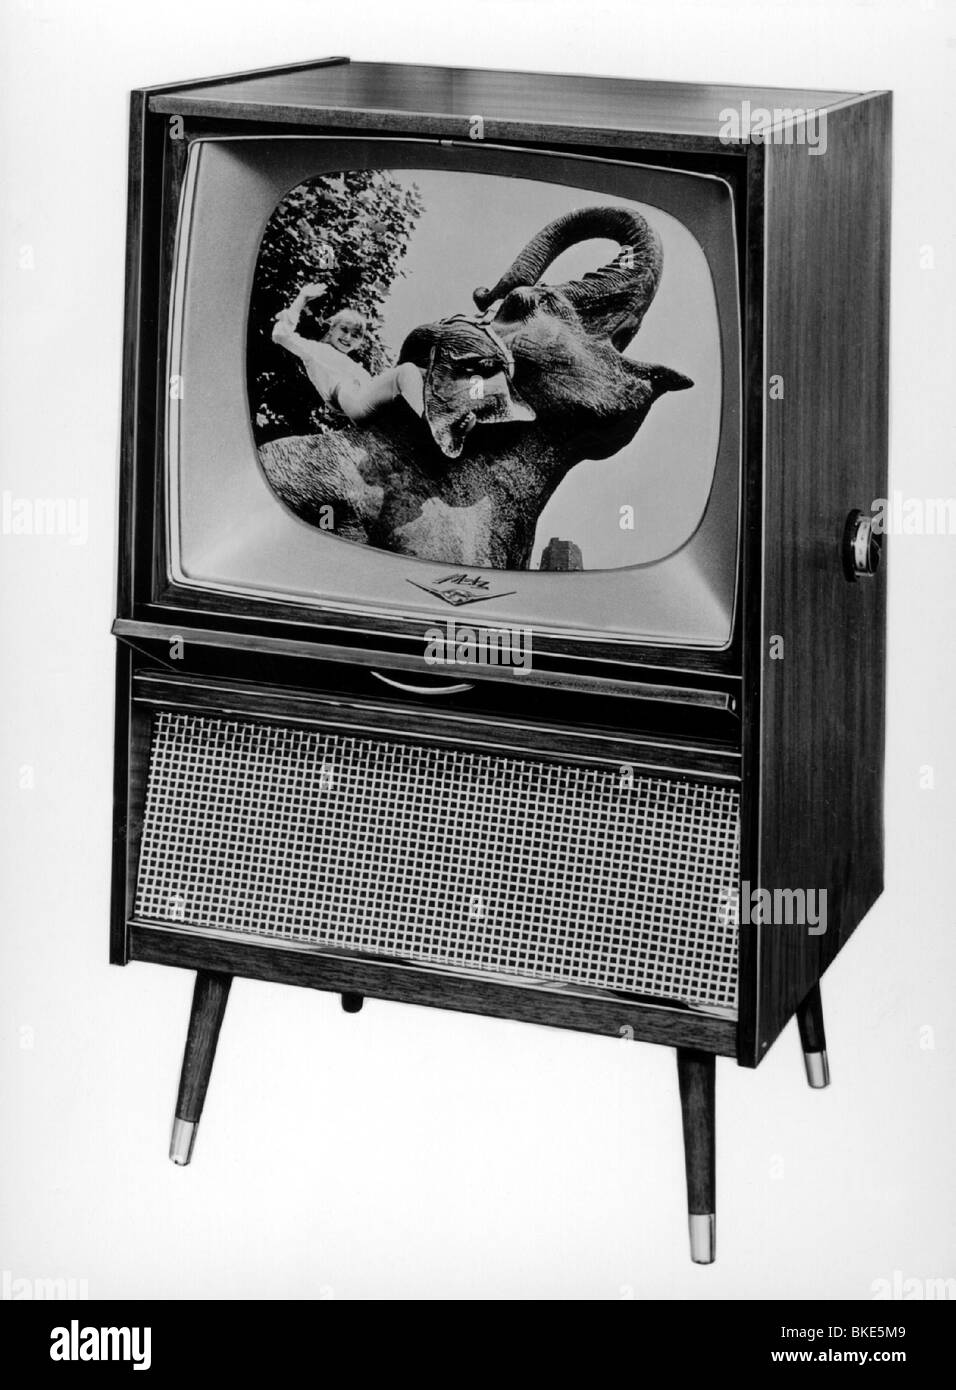 Television Set 1960s Black And White Stock Photos Images Alamy # Pose Television En Bois